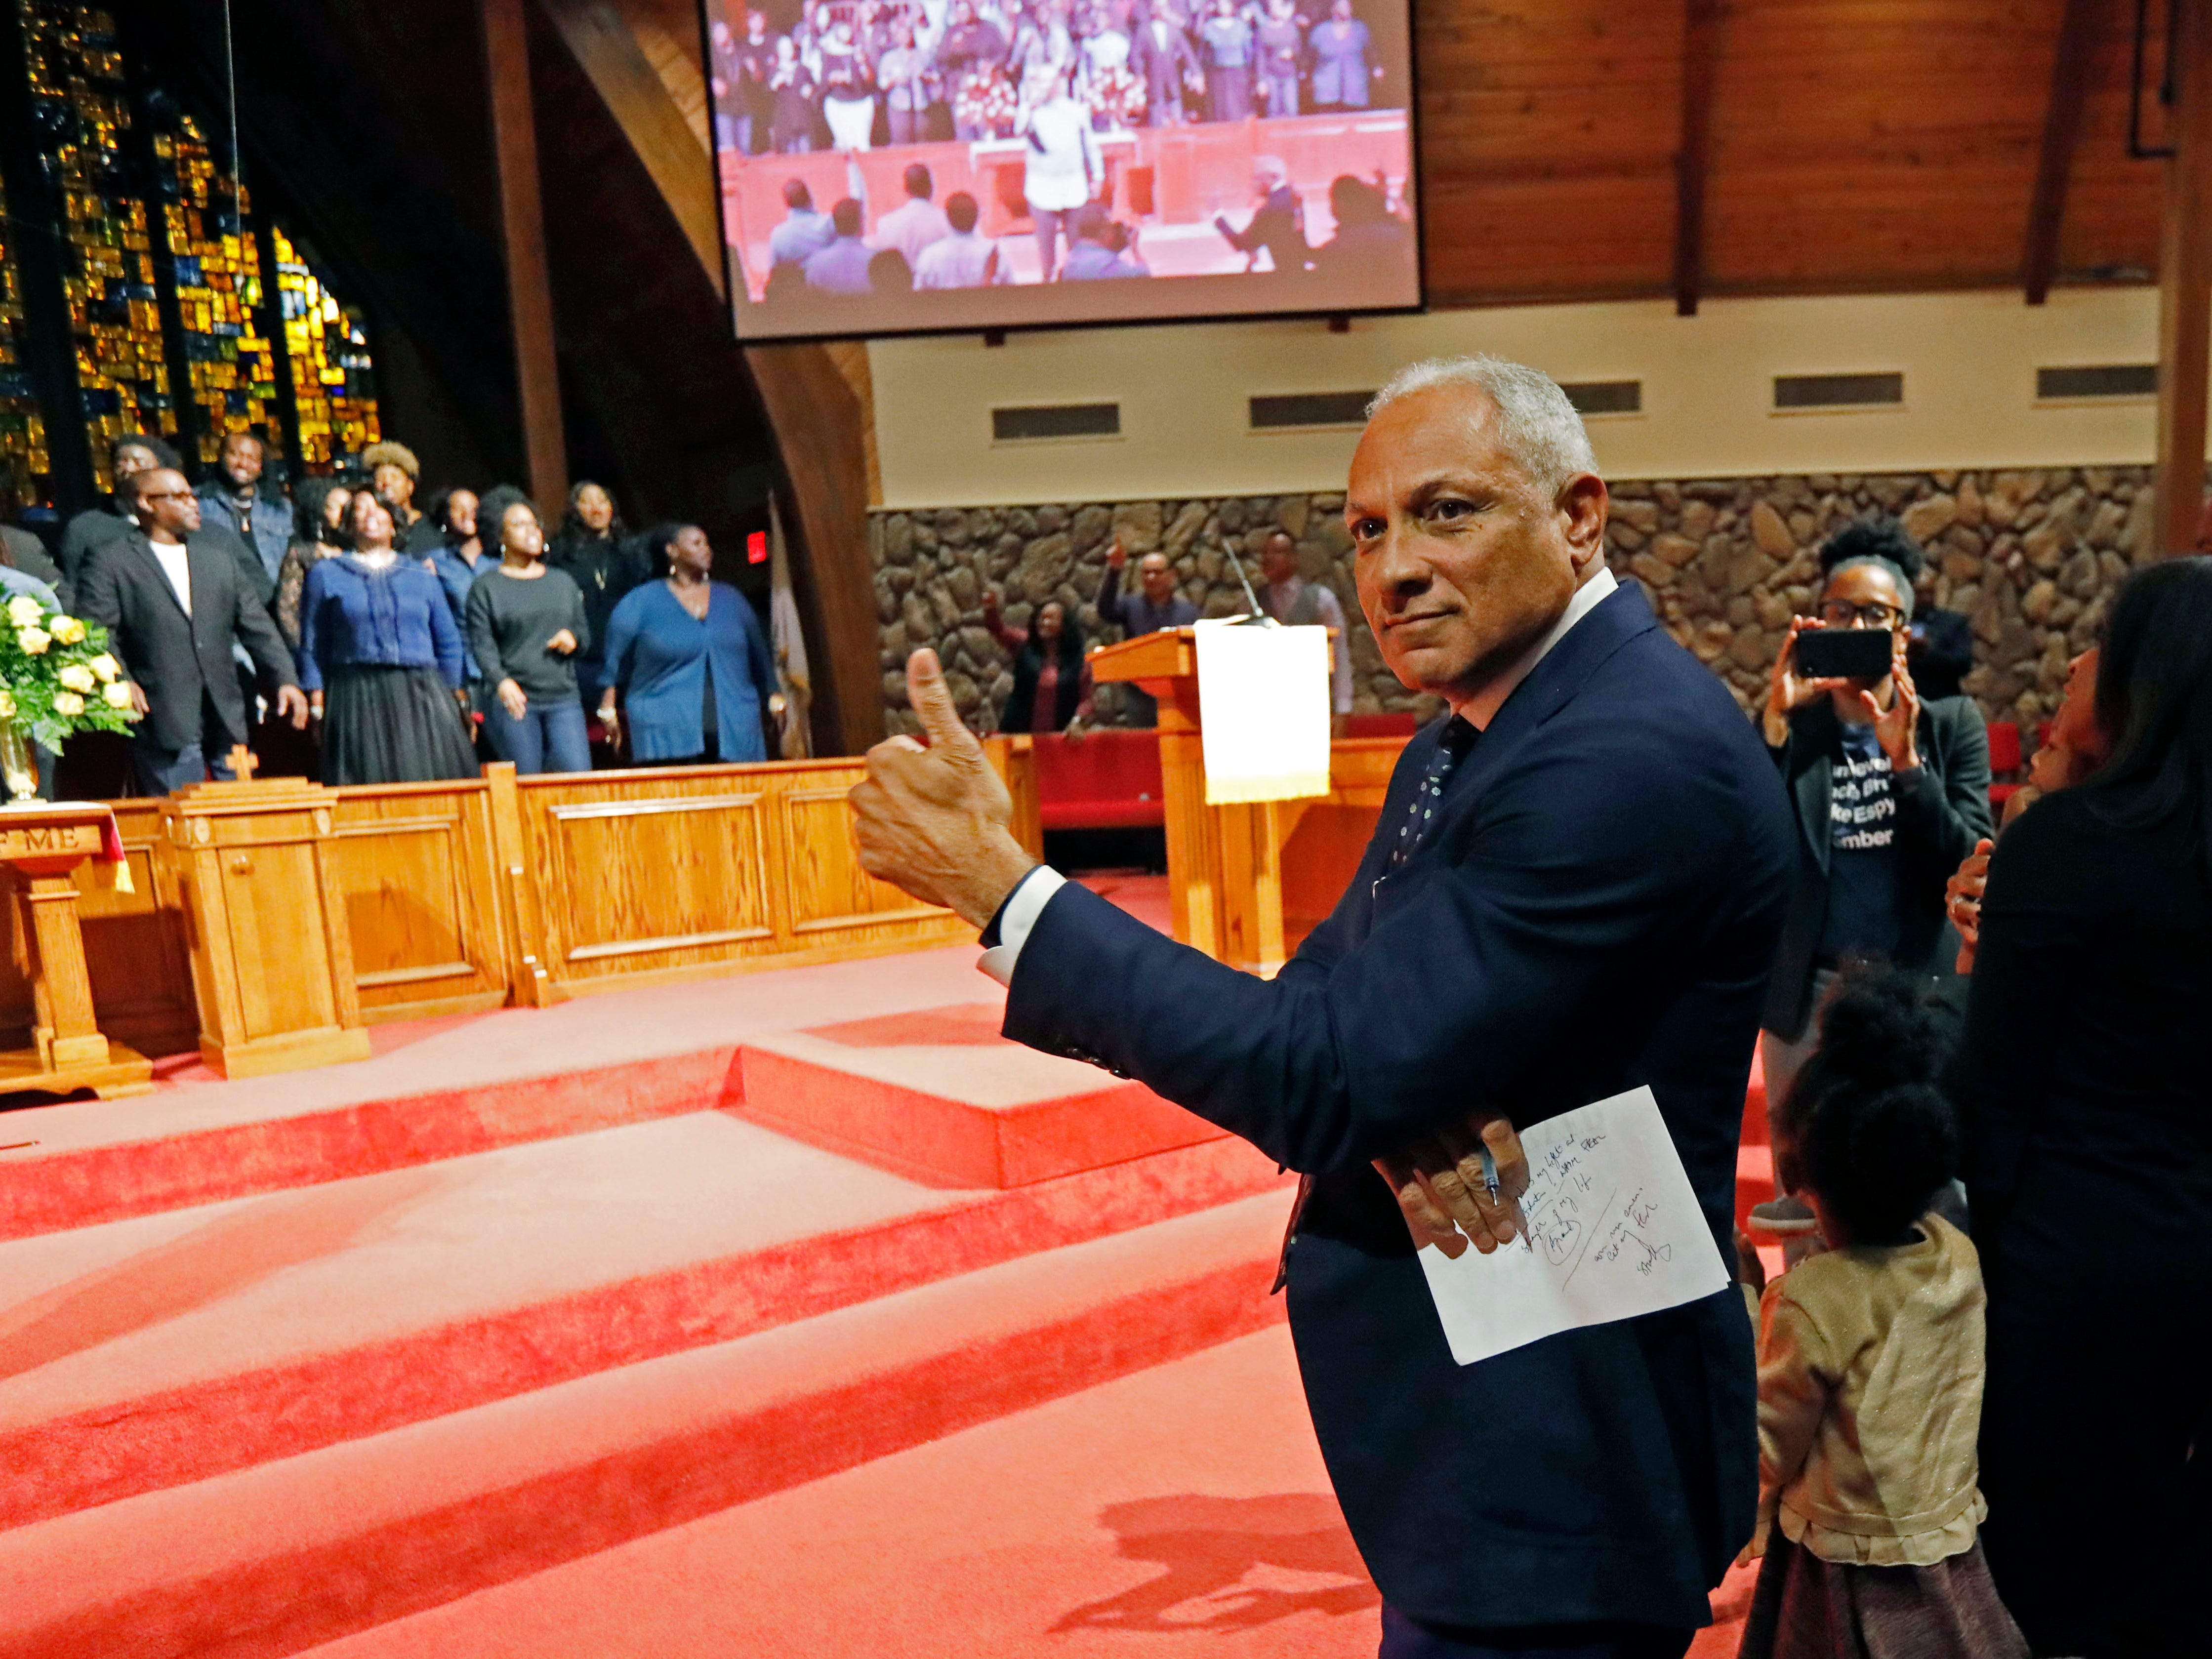 Former Democratic congressman and Agriculture Secretary under the Clinton Administration, Mike Espy gives a thumbs-up during a special performance of a choir in a rally at Anderson United Methodist Church in Jackson, Miss., Monday, Nov. 5, 2018.